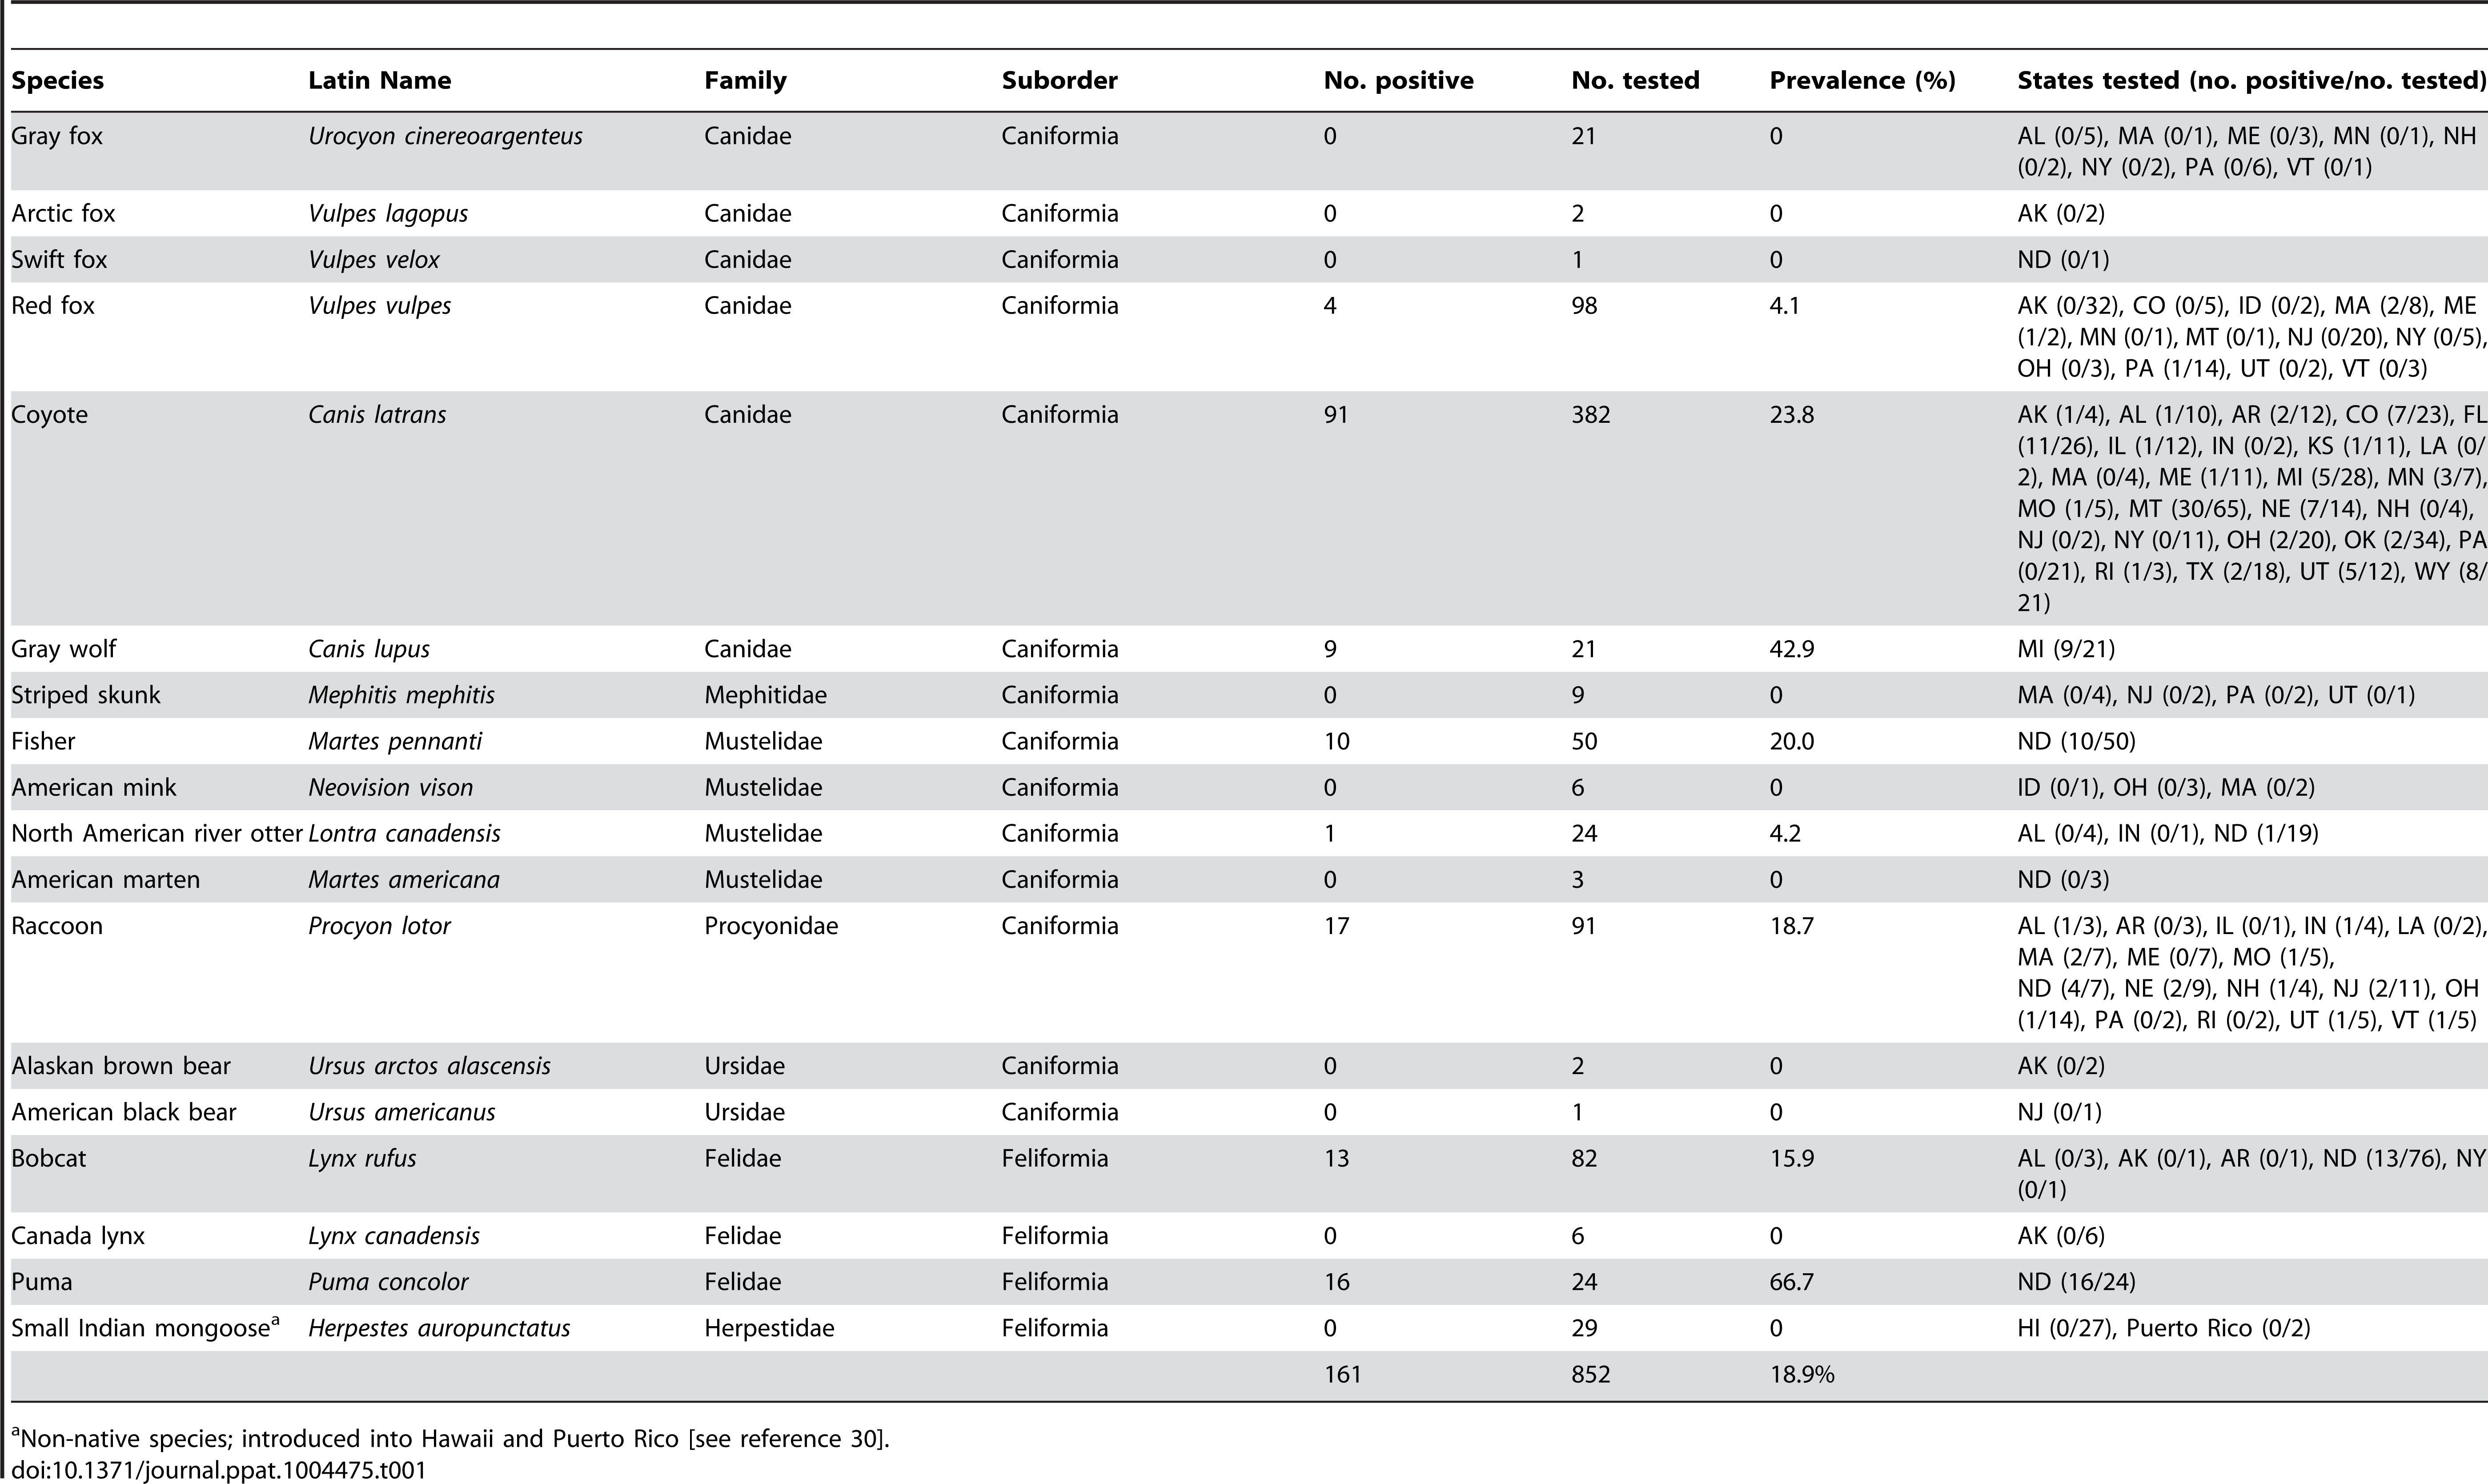 Parvoviruses recovered from wild carnivores in the United States during this study, indicating the species and number of individual animals tested, the different states sampled, and the prevalence rates of parvovirus DNA detection from tissues.